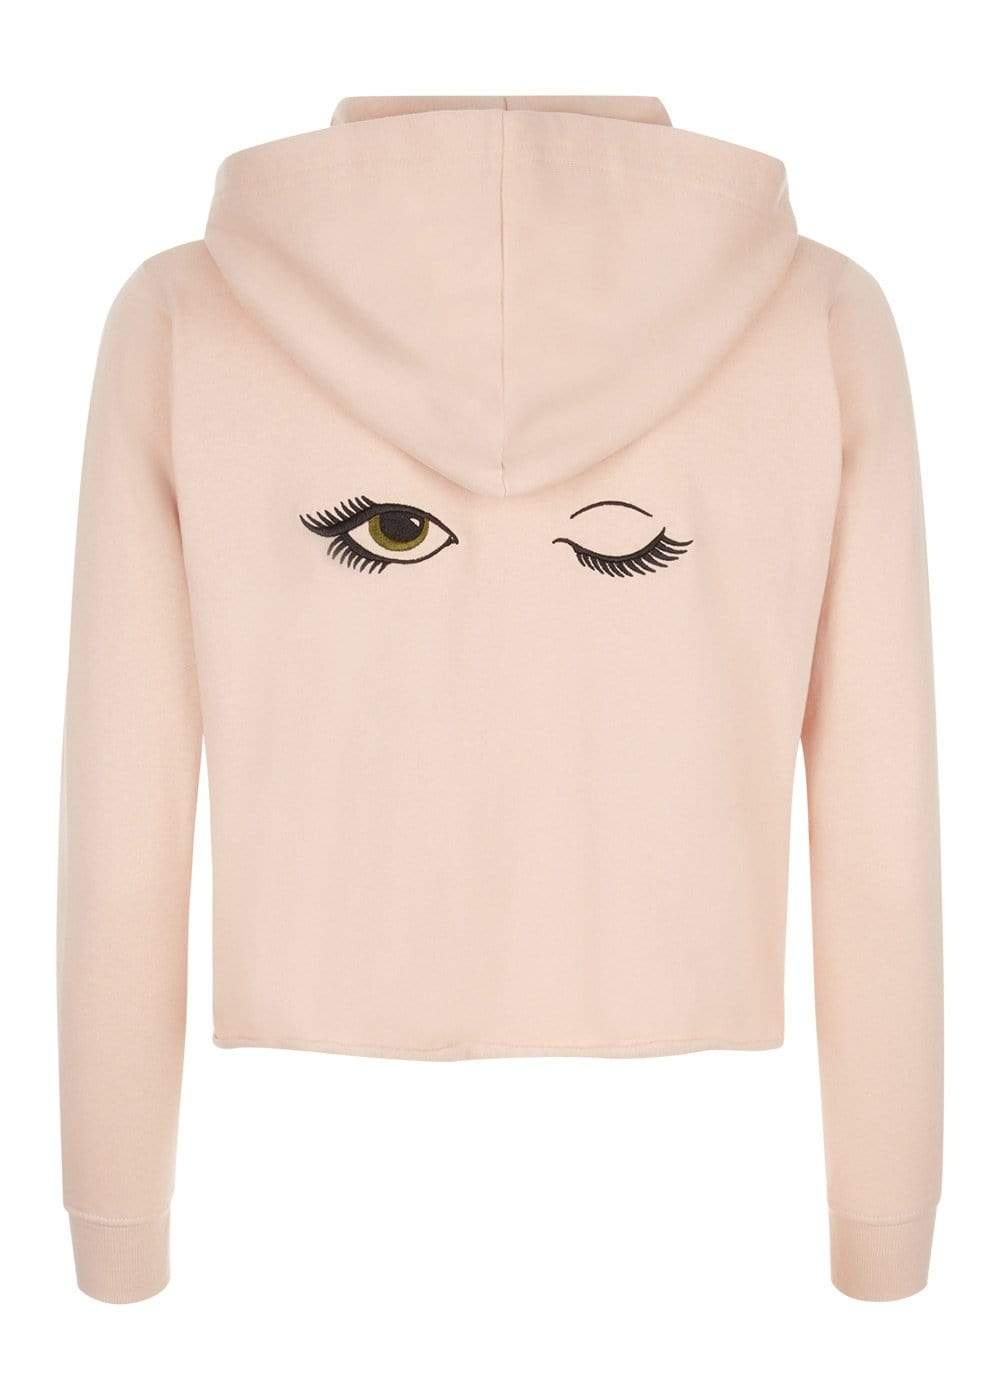 Teenzshop  Girls Pink Cropped Zip-up Hoodie With Wink Eyes Back